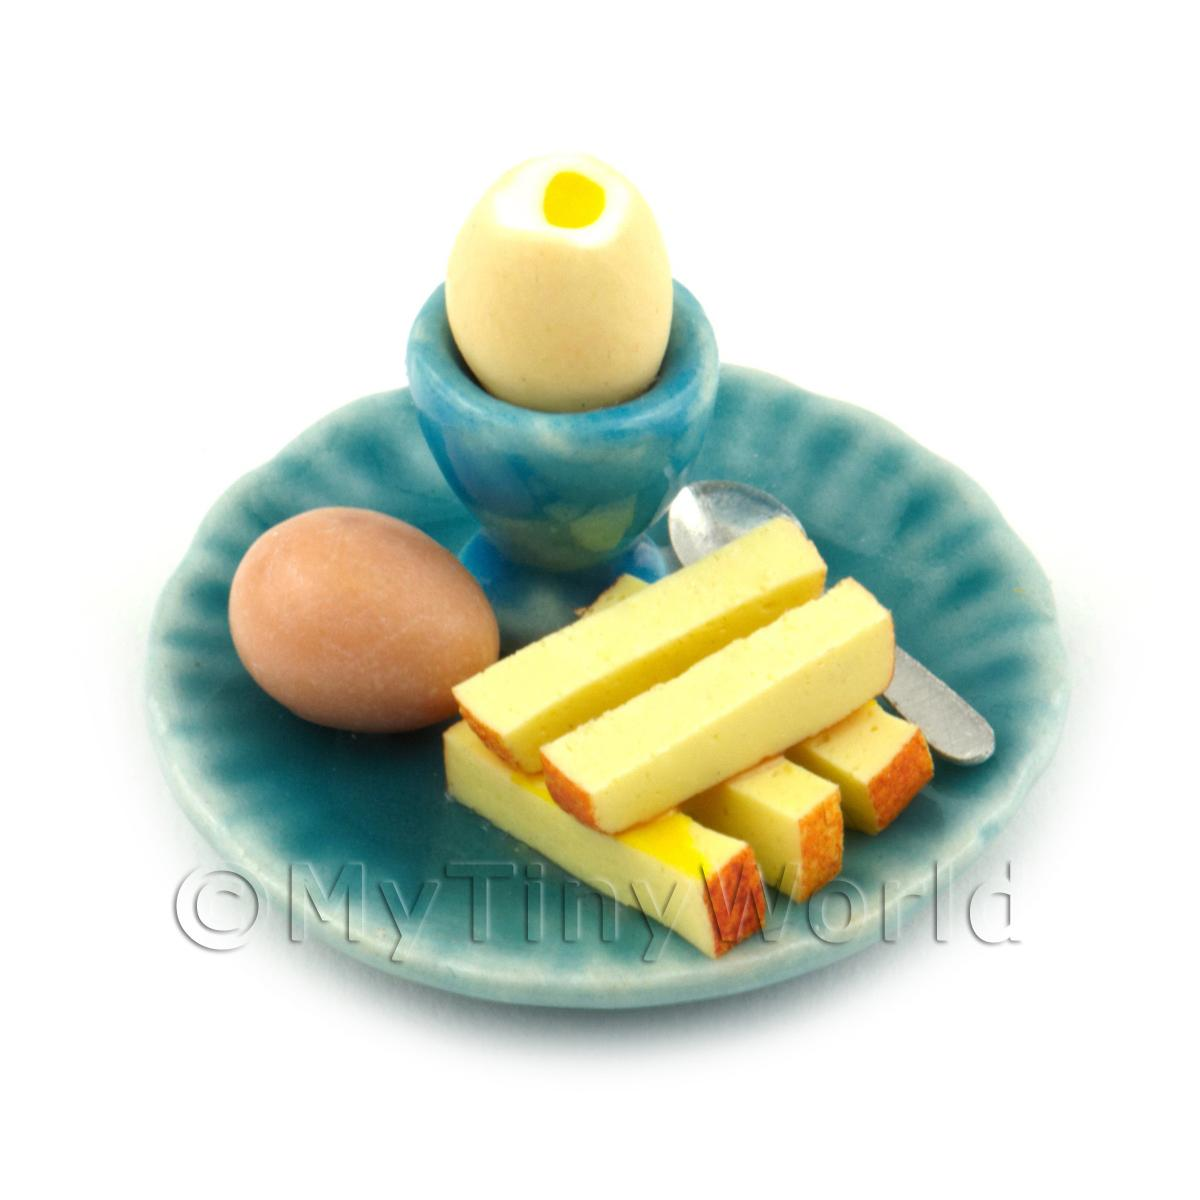 Dolls House Miniature Boiled Egg Top Off On A Blue Plate Style 2